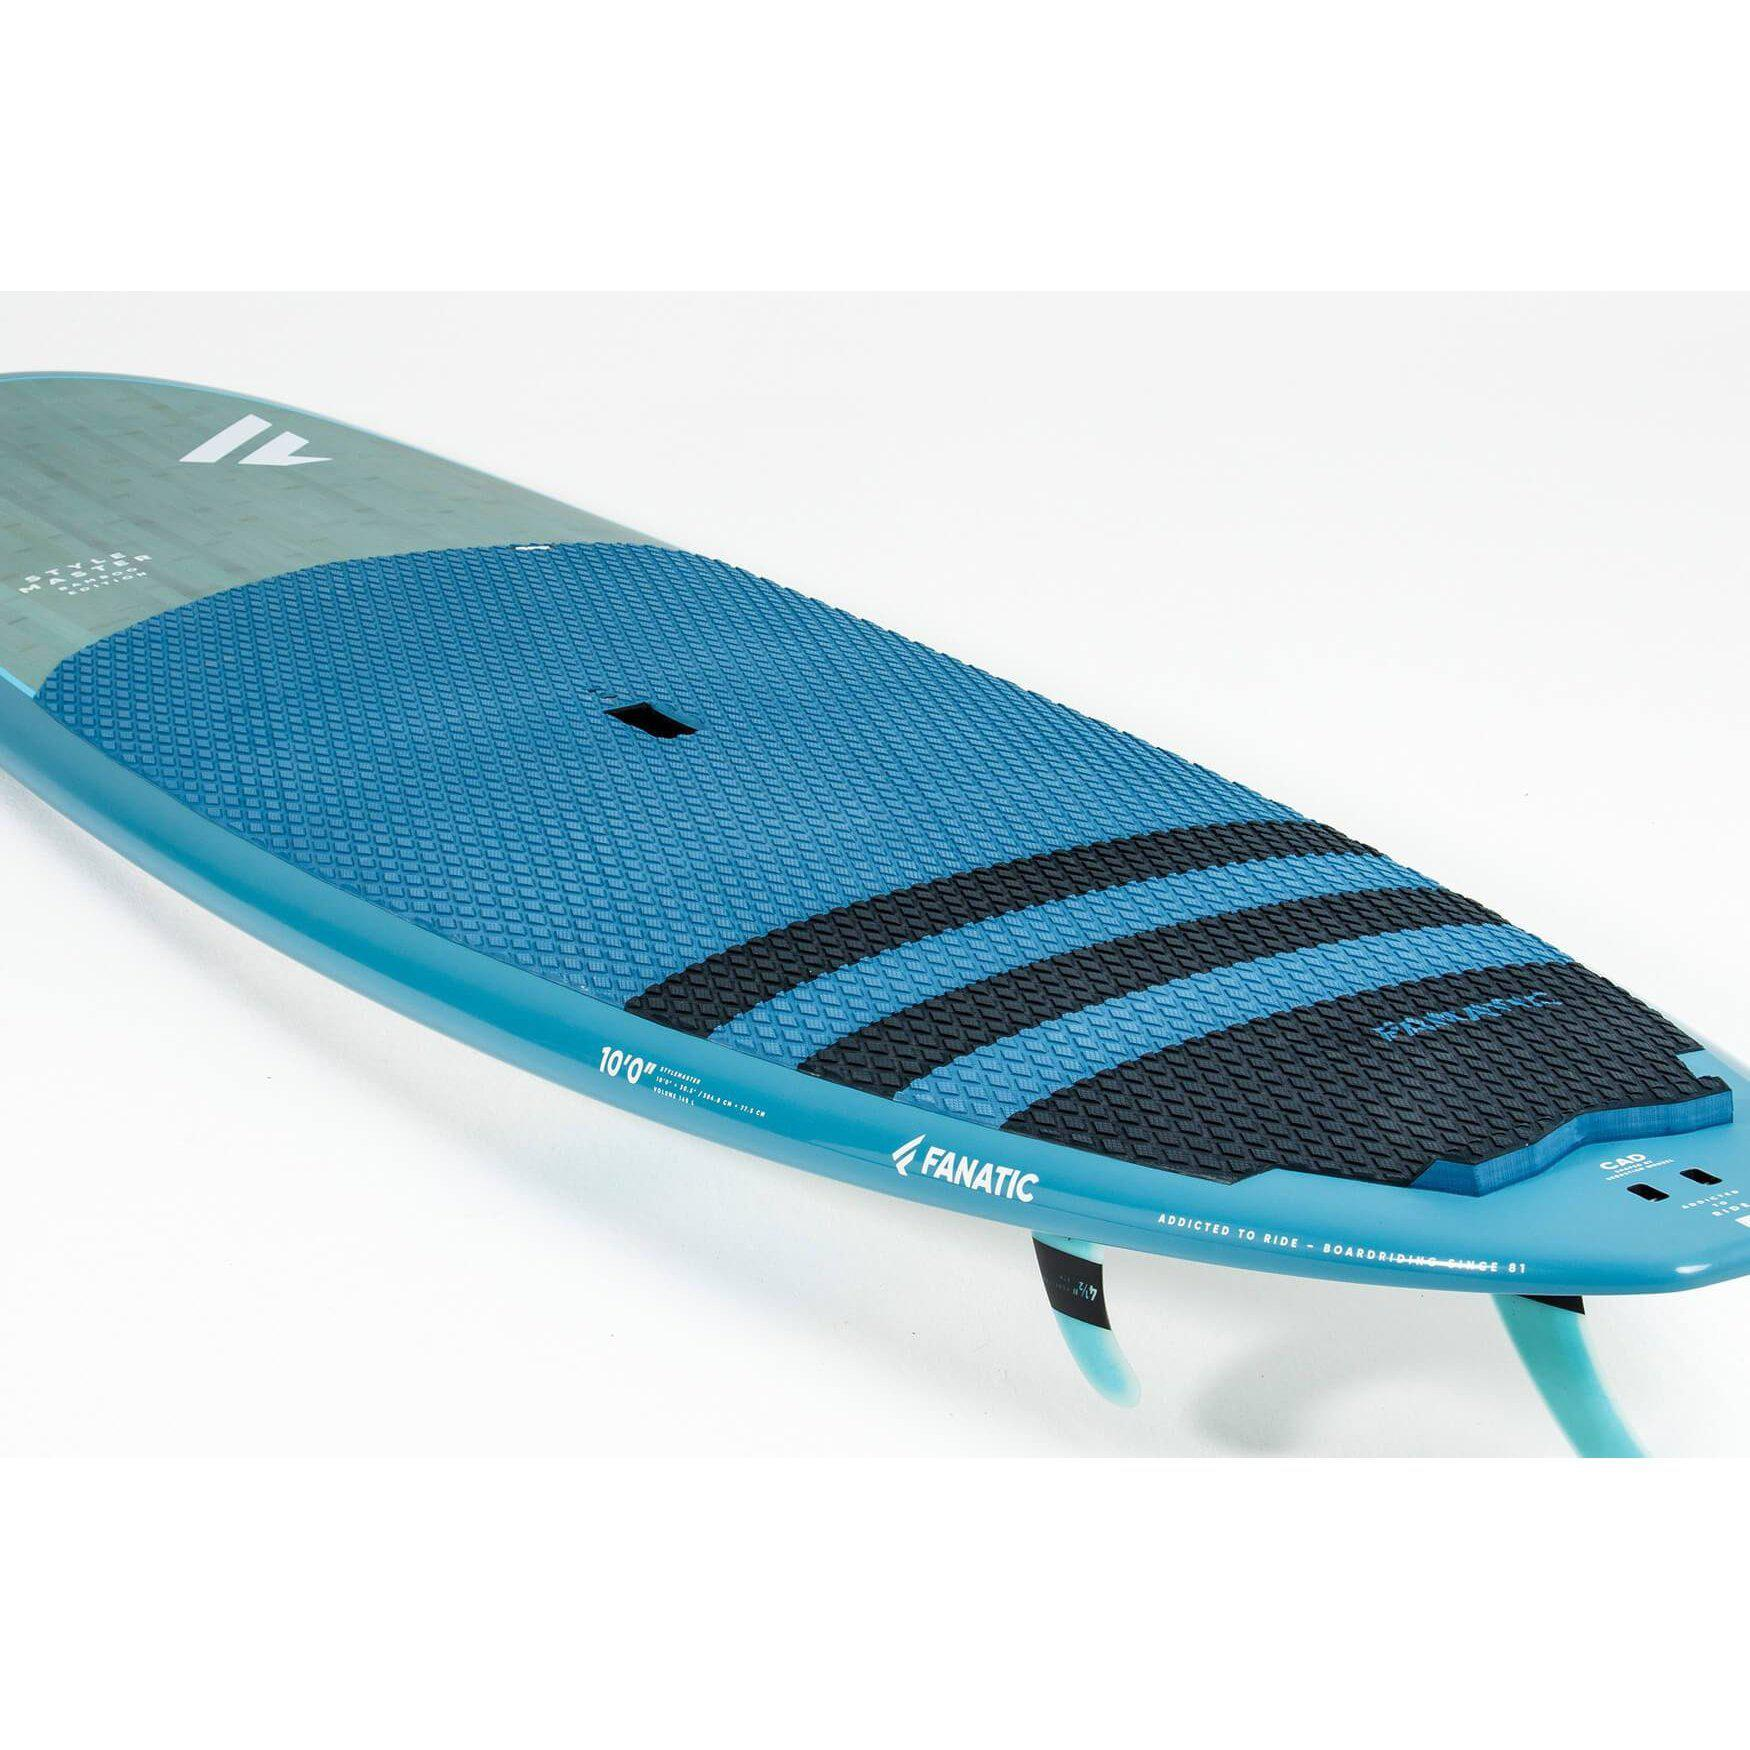 2020 Fanatic Stylemaster SUP Board-Big Winds